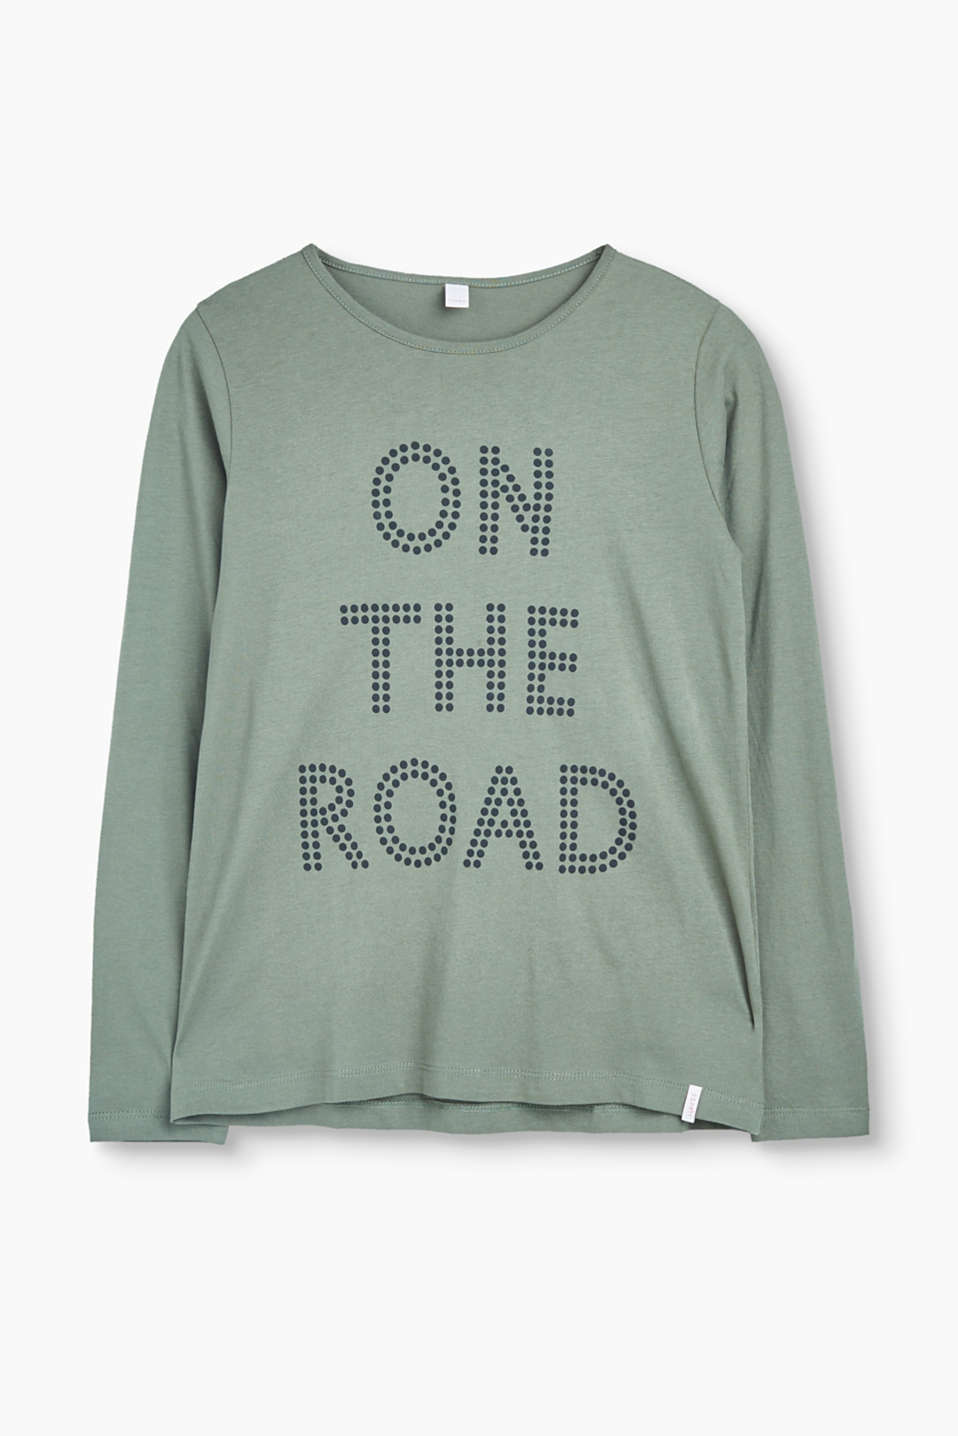 -It is easy to simply put something on and look cool with this print long sleeve top in soft cotton jersey!